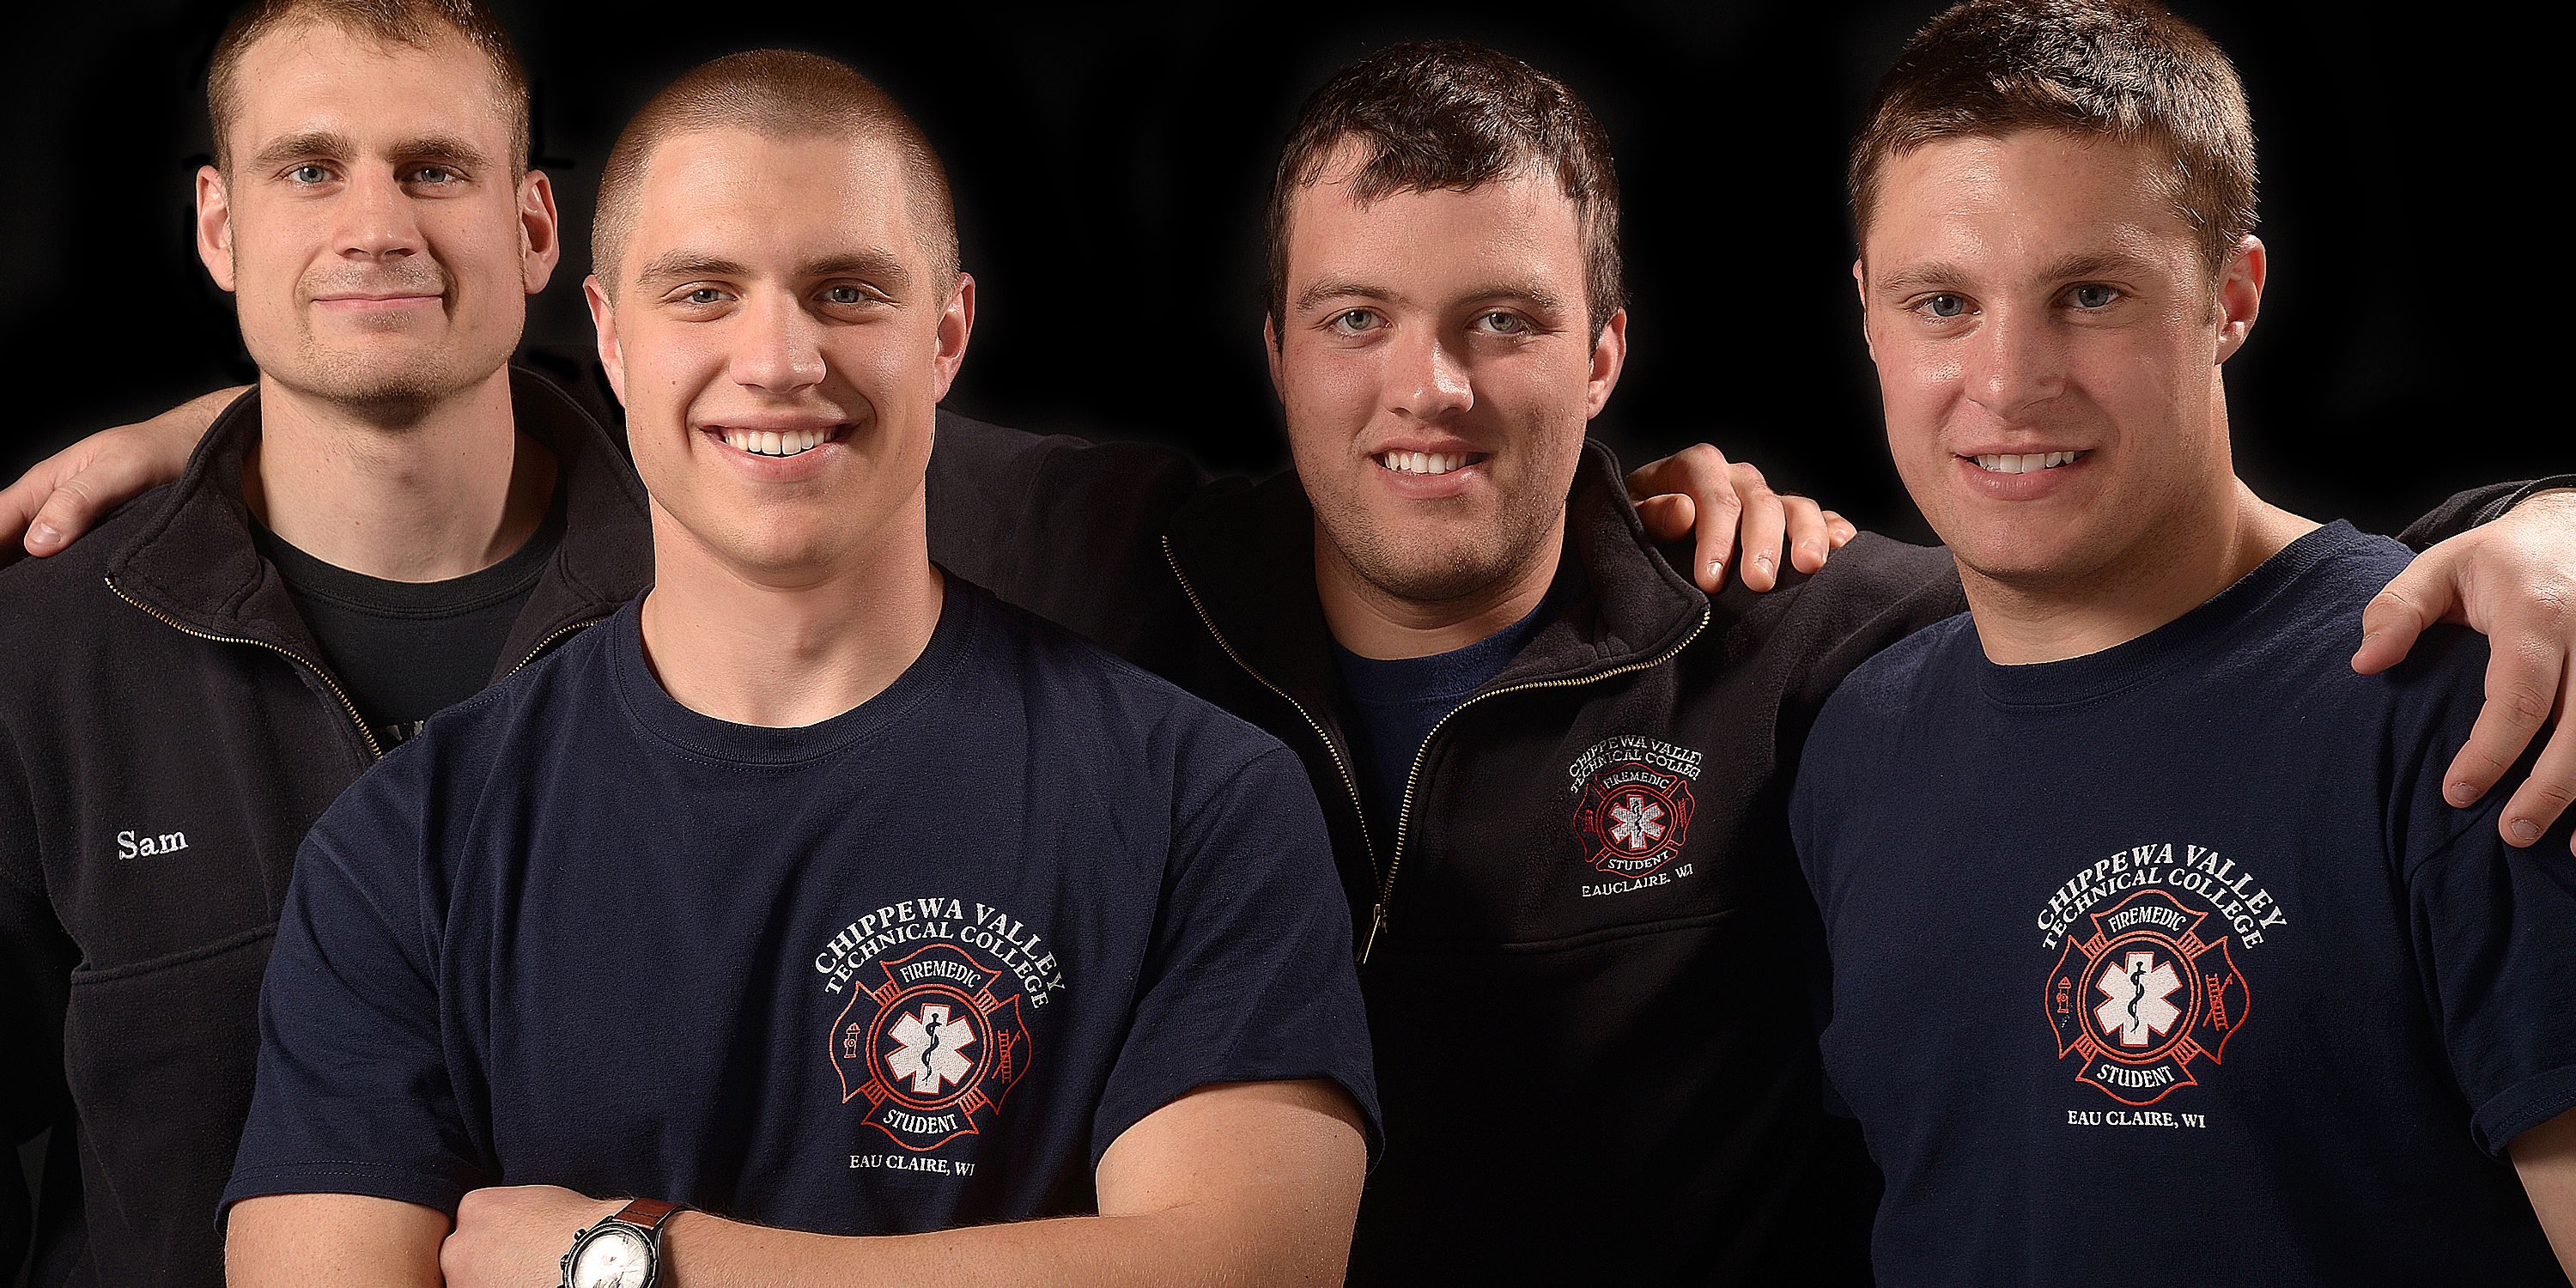 meet the firefighters